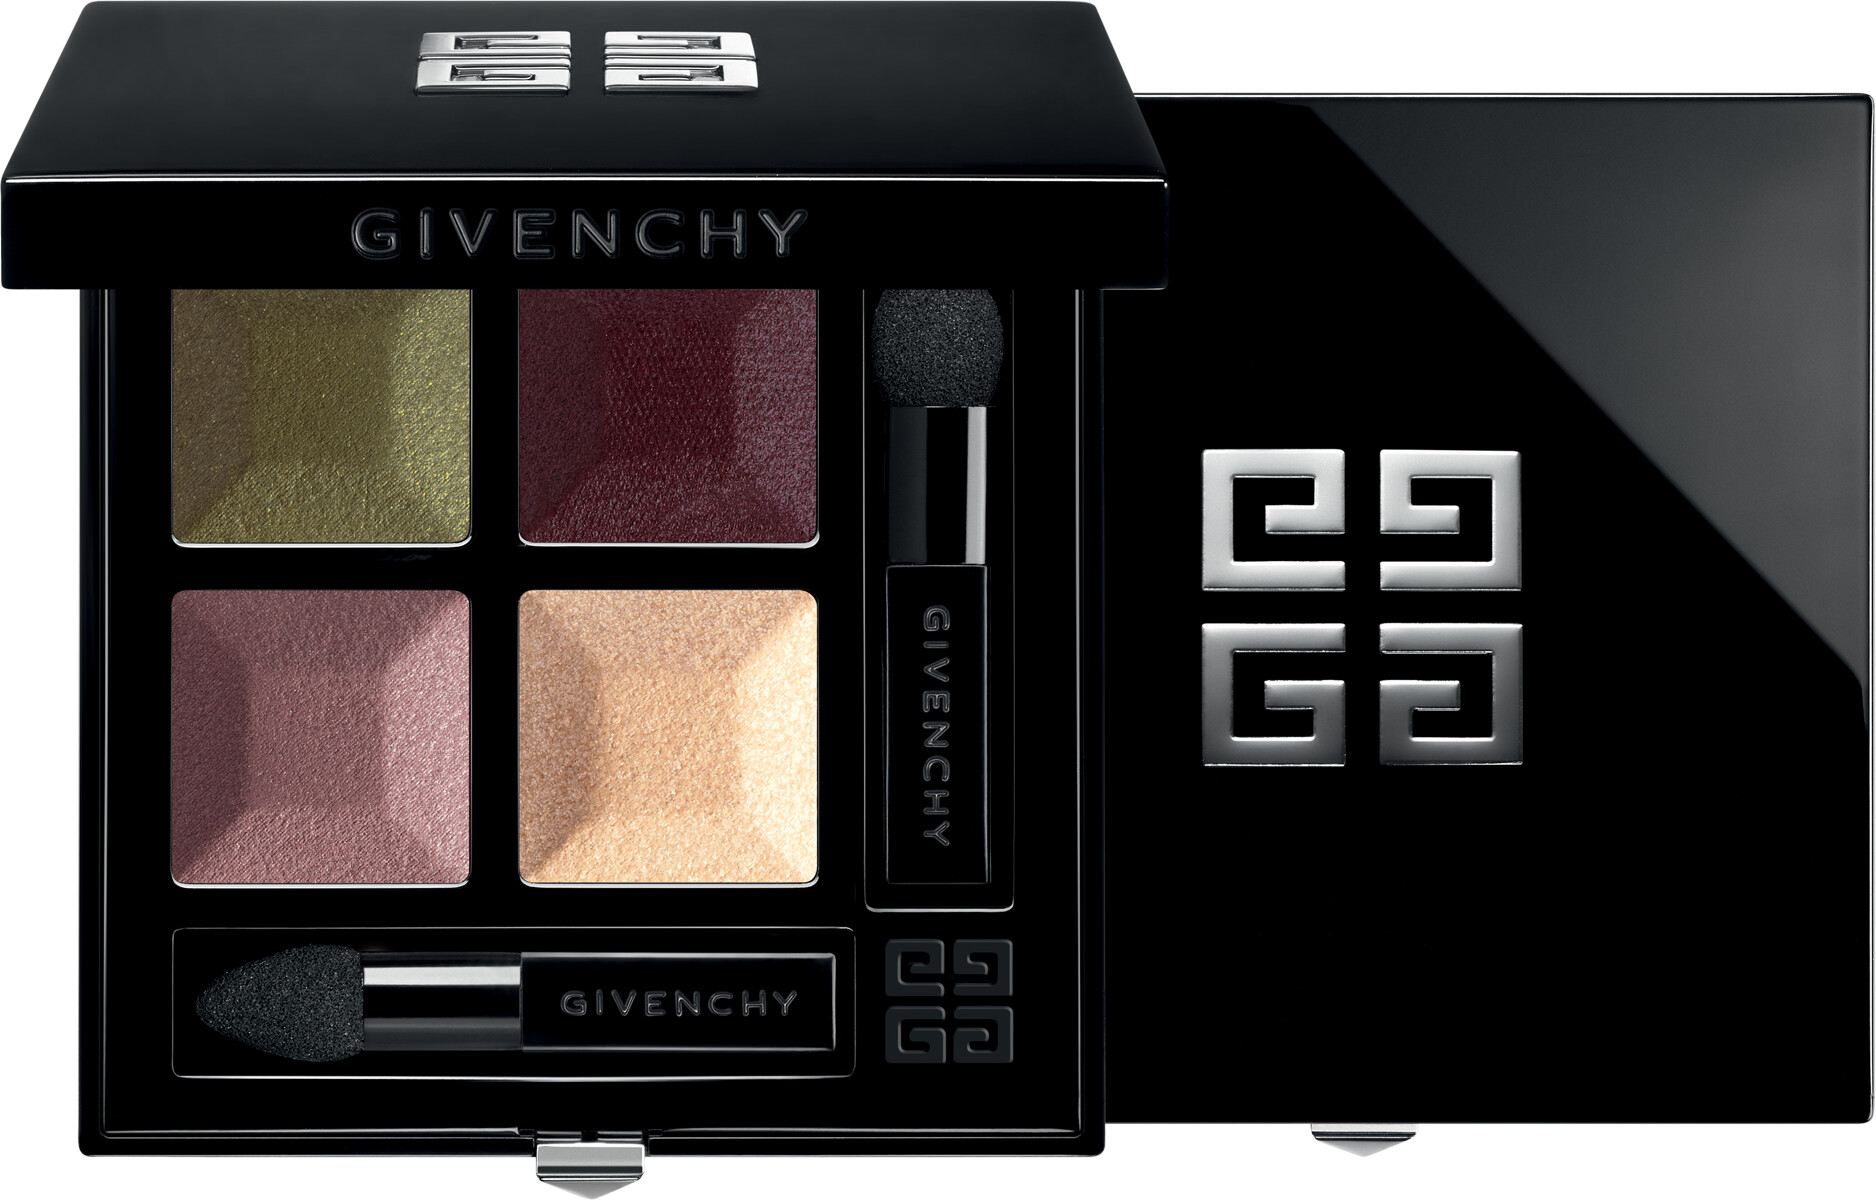 GIVENCHY Prisme Quatuor  Intense & Radiant Eyeshadow 4 Colors 4g 07  Tentation